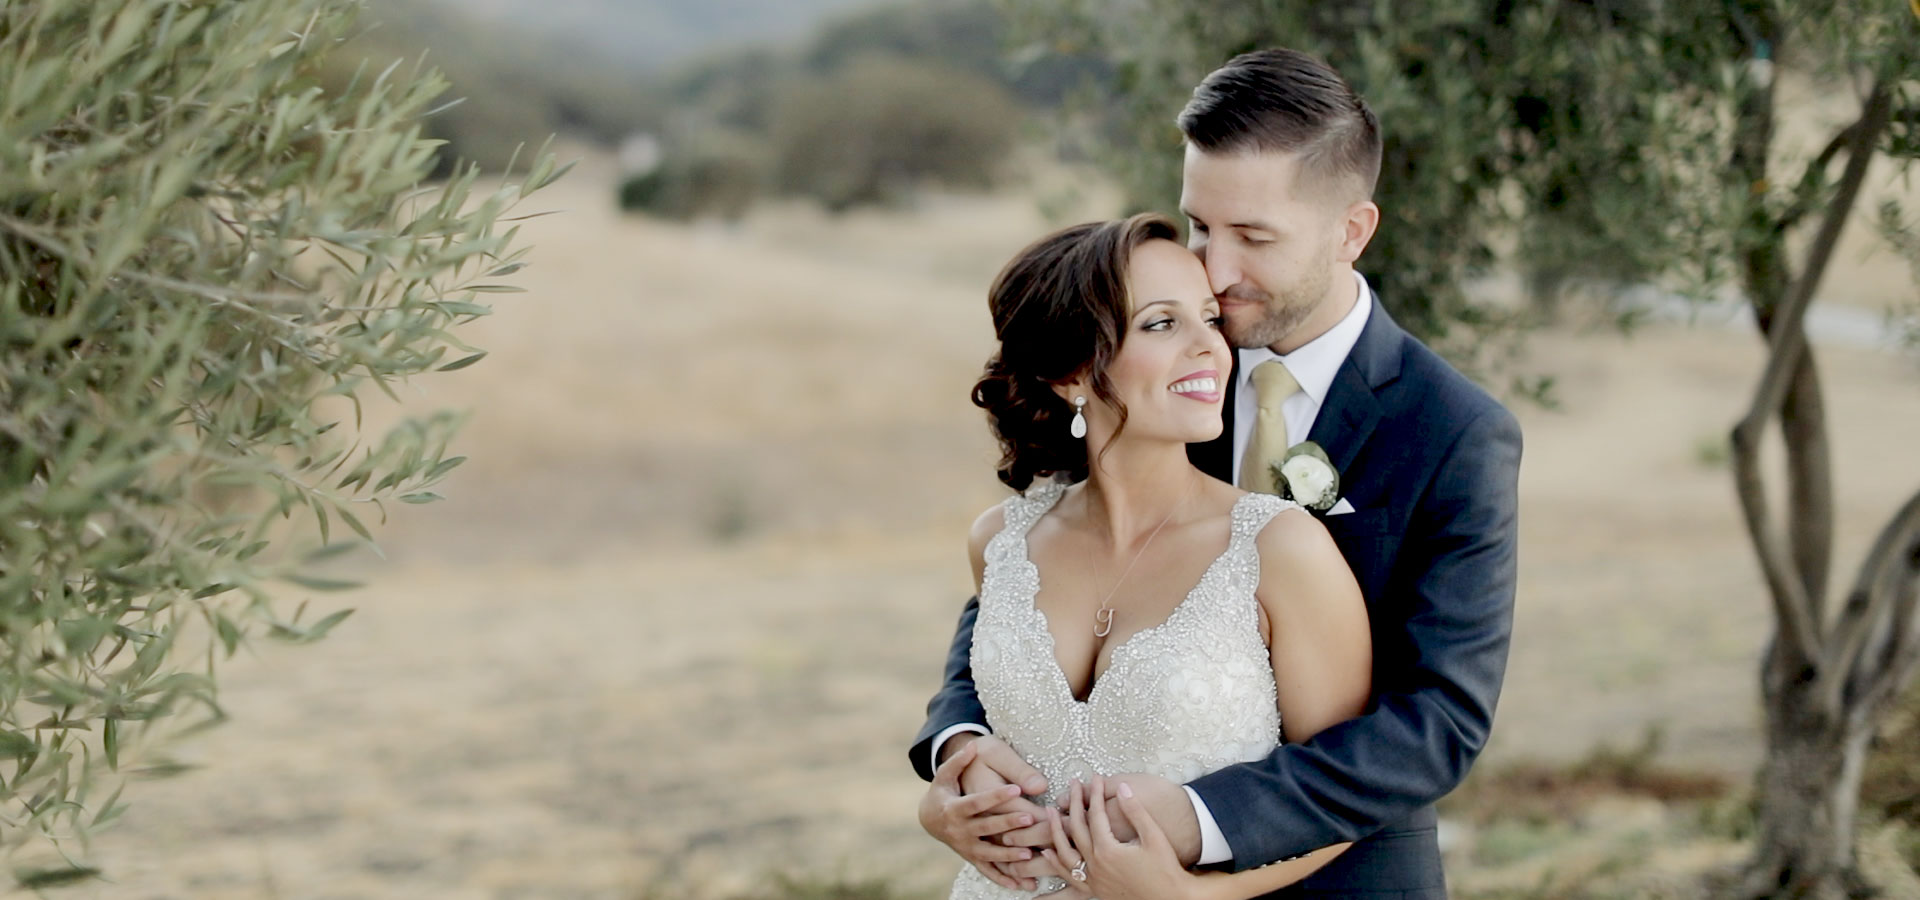 Nick + Victoria | Morgan Hill, California | Willow Heights Mansion